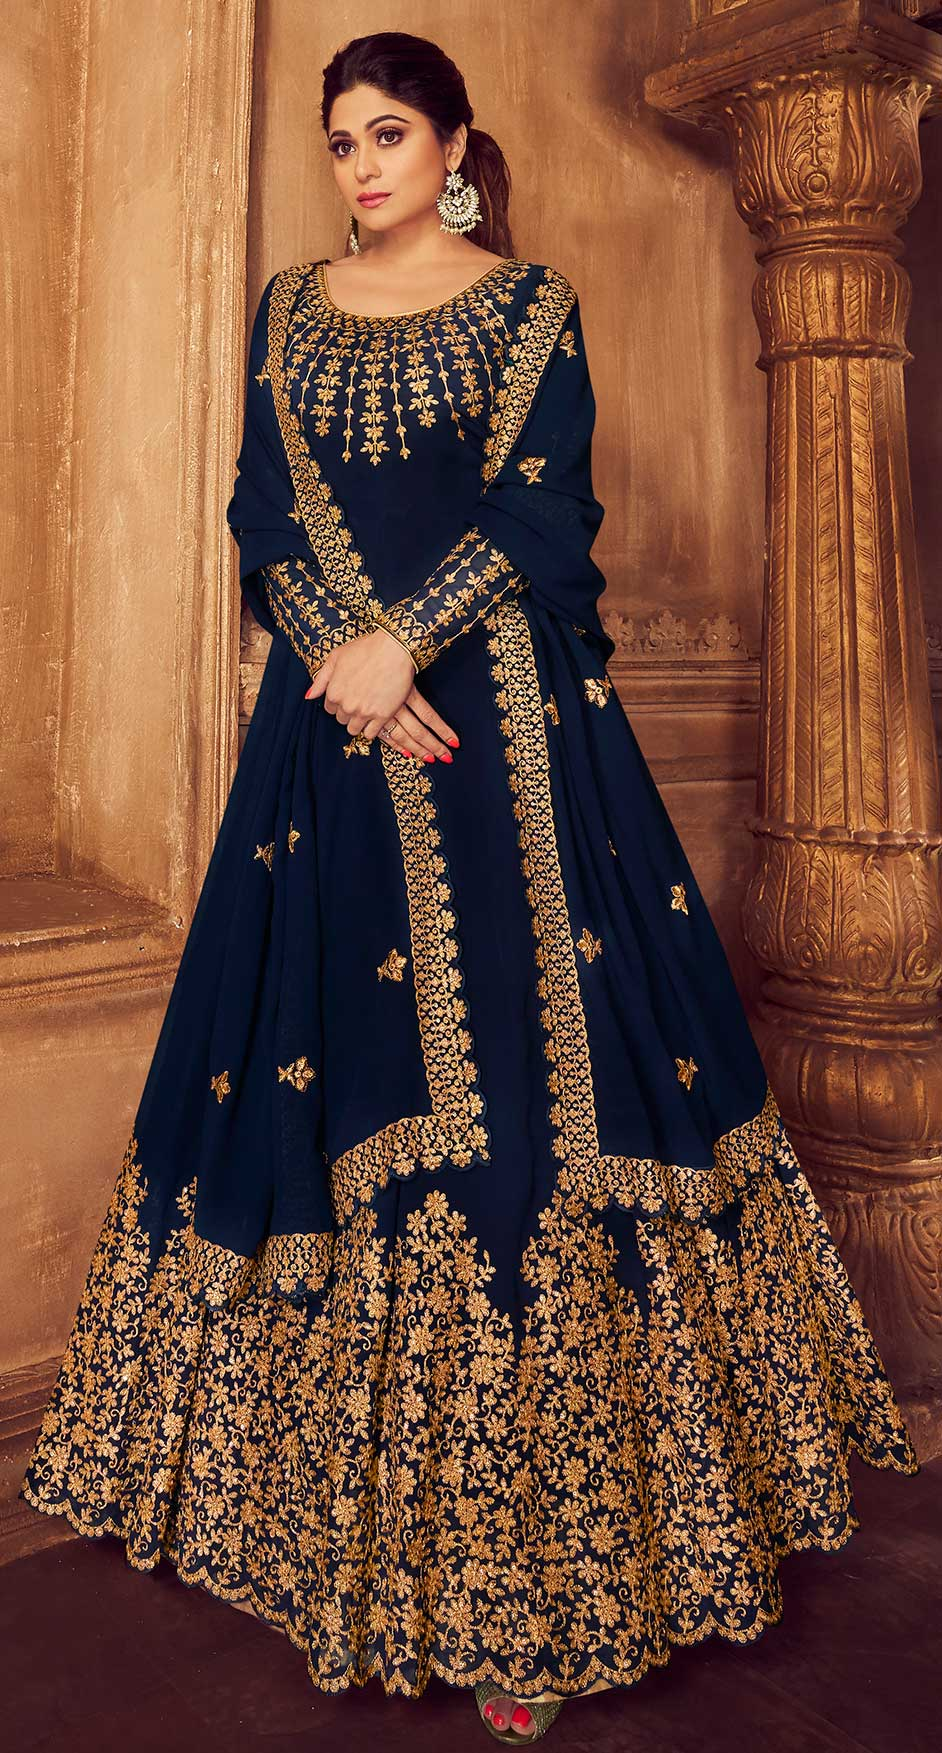 The latest trends in Anarkali Suits to watch for this festive season